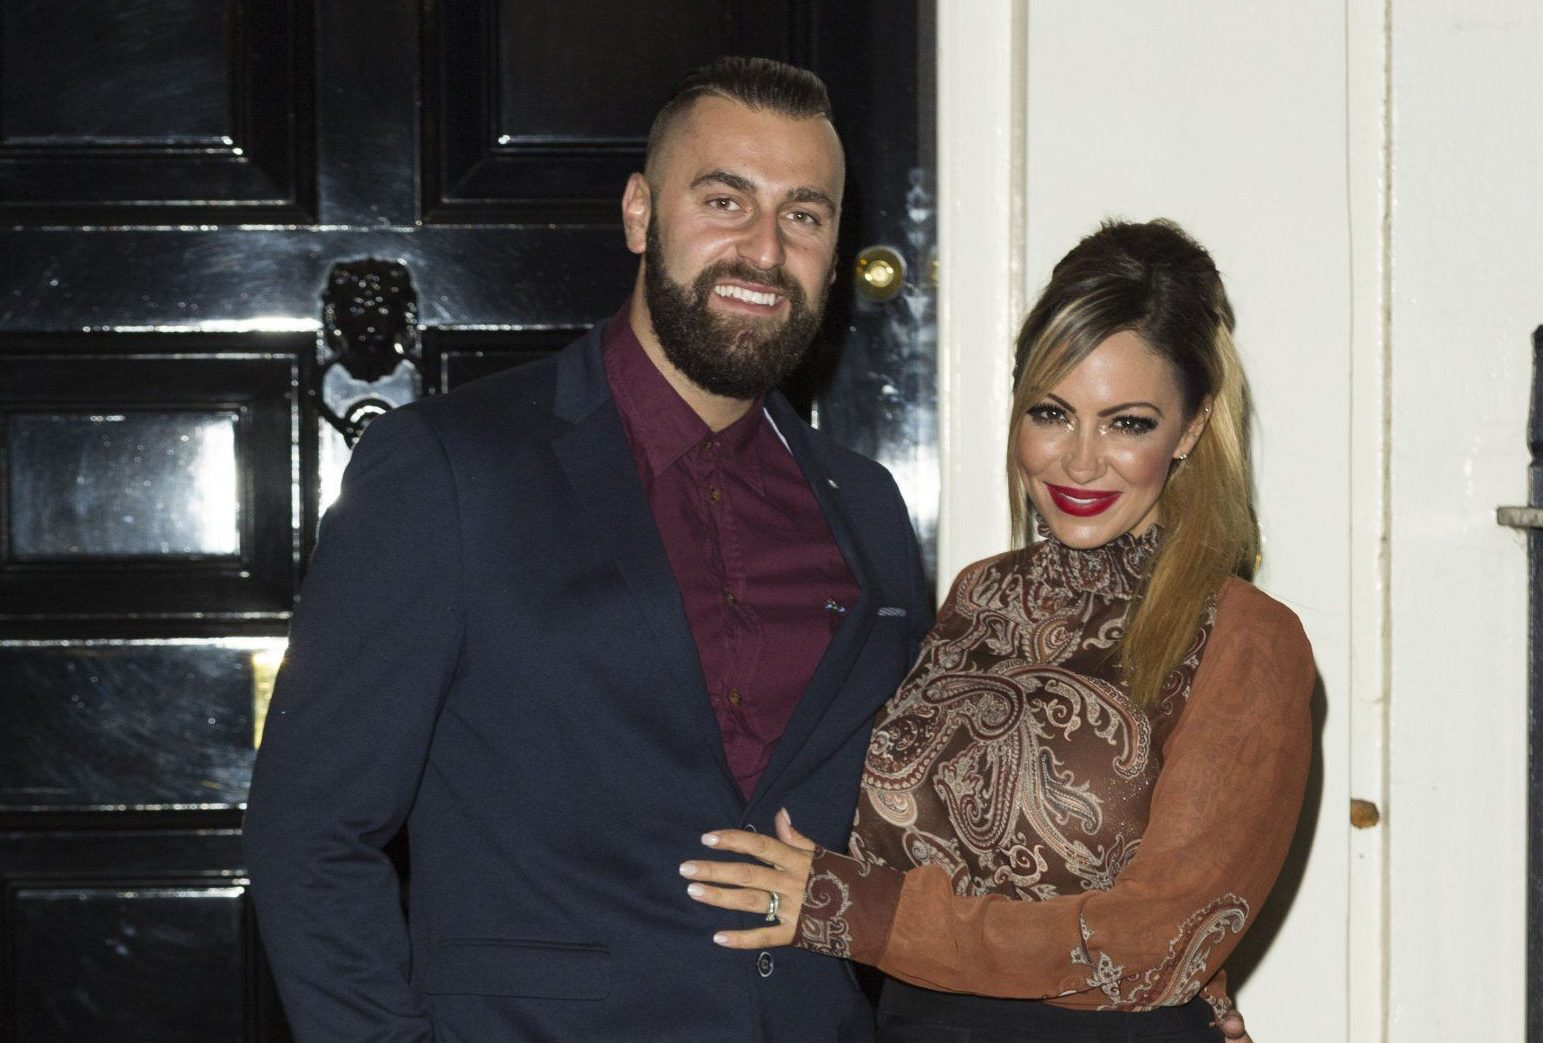 Mandatory Credit: Photo by Ray Tang/REX/Shutterstock (5300730e) James Placido and Jodie Marsh #DASWEET16 16th Anniversary, London, Britain - 26 Oct 2015